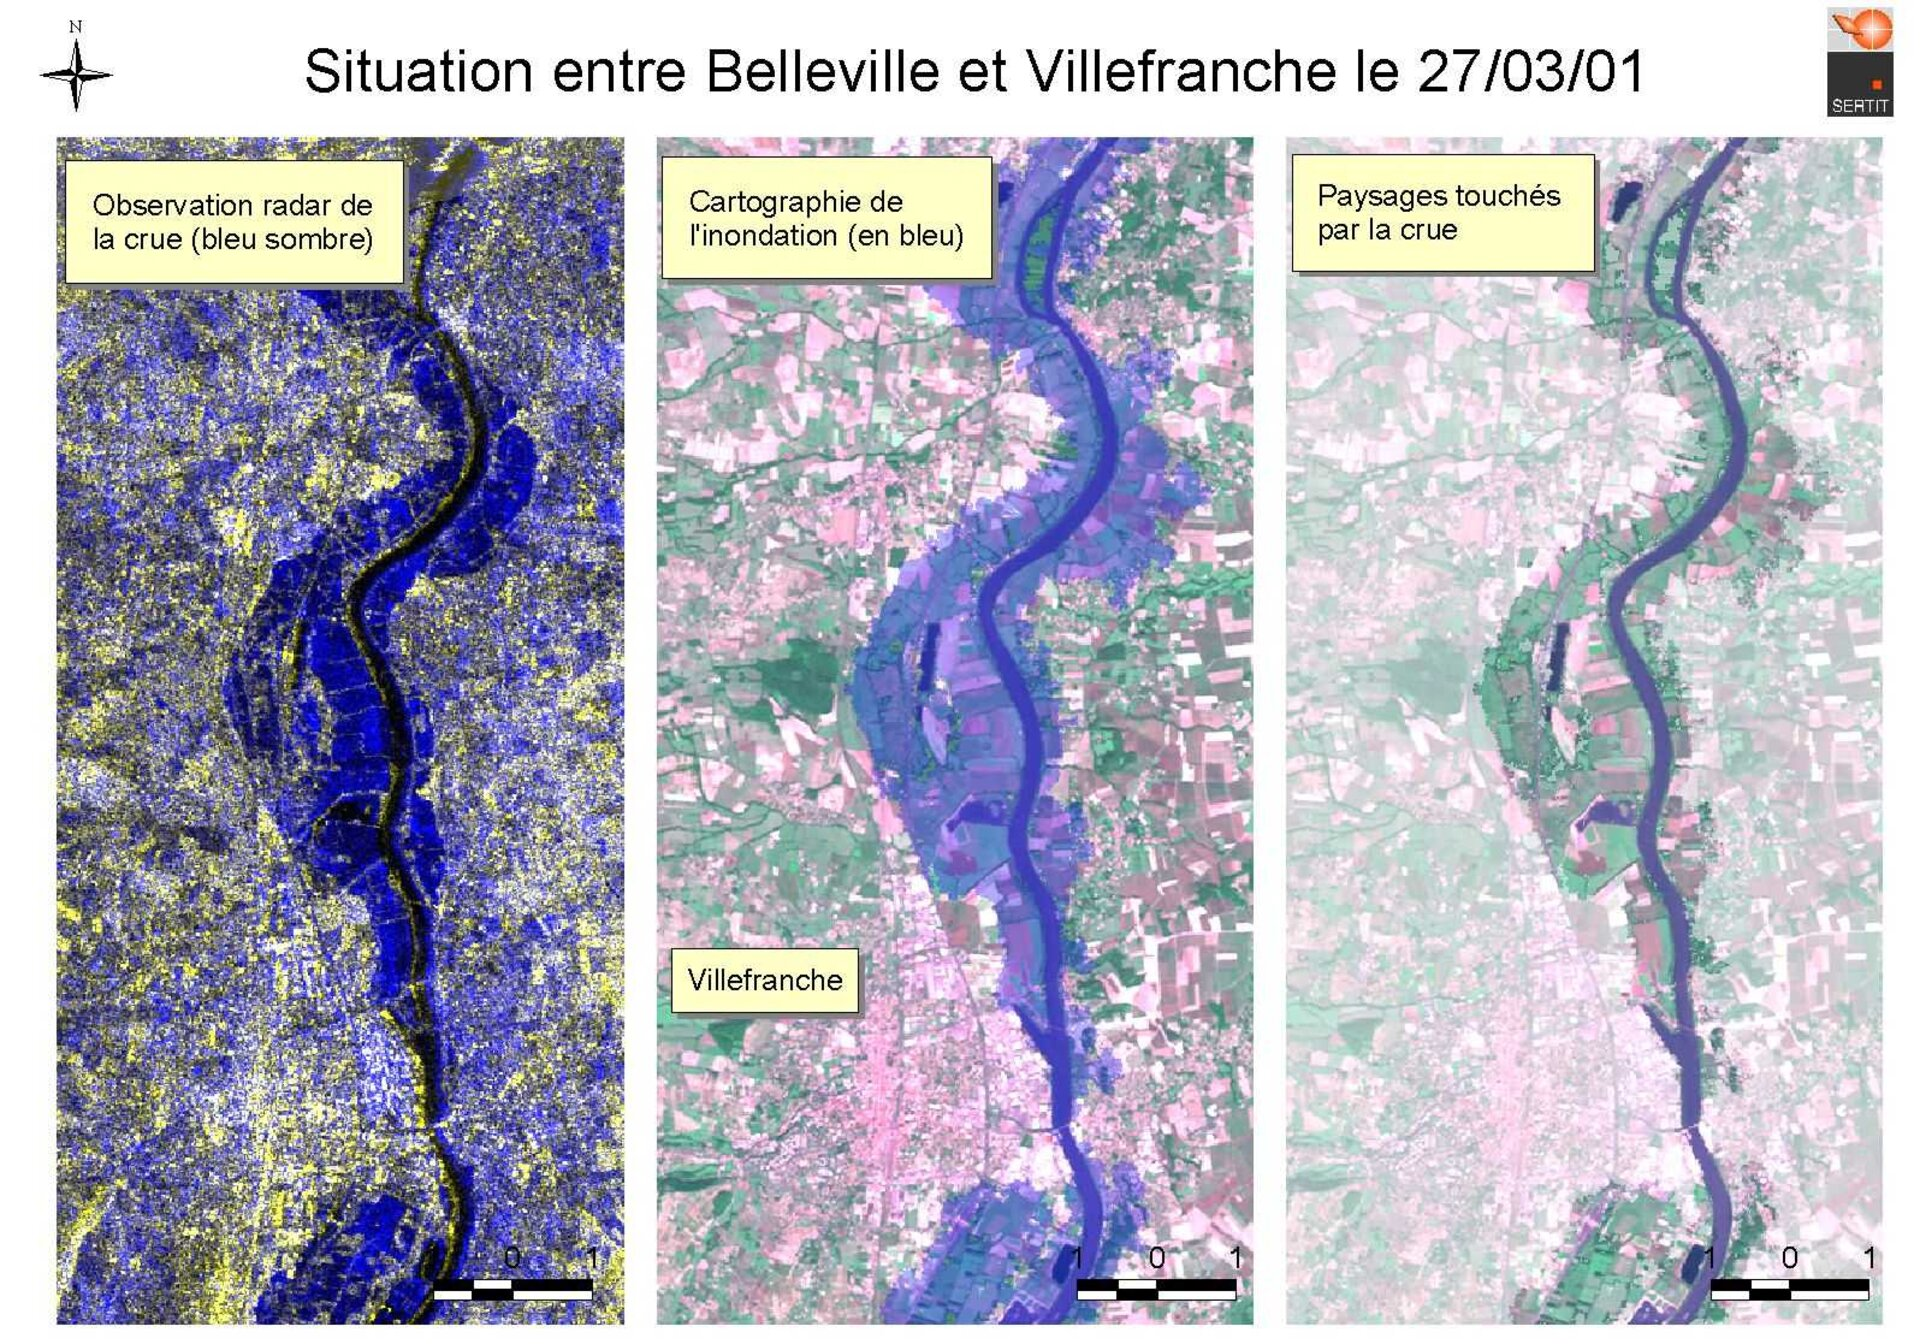 Situation between Belleville and Villefranche on 27/03/01